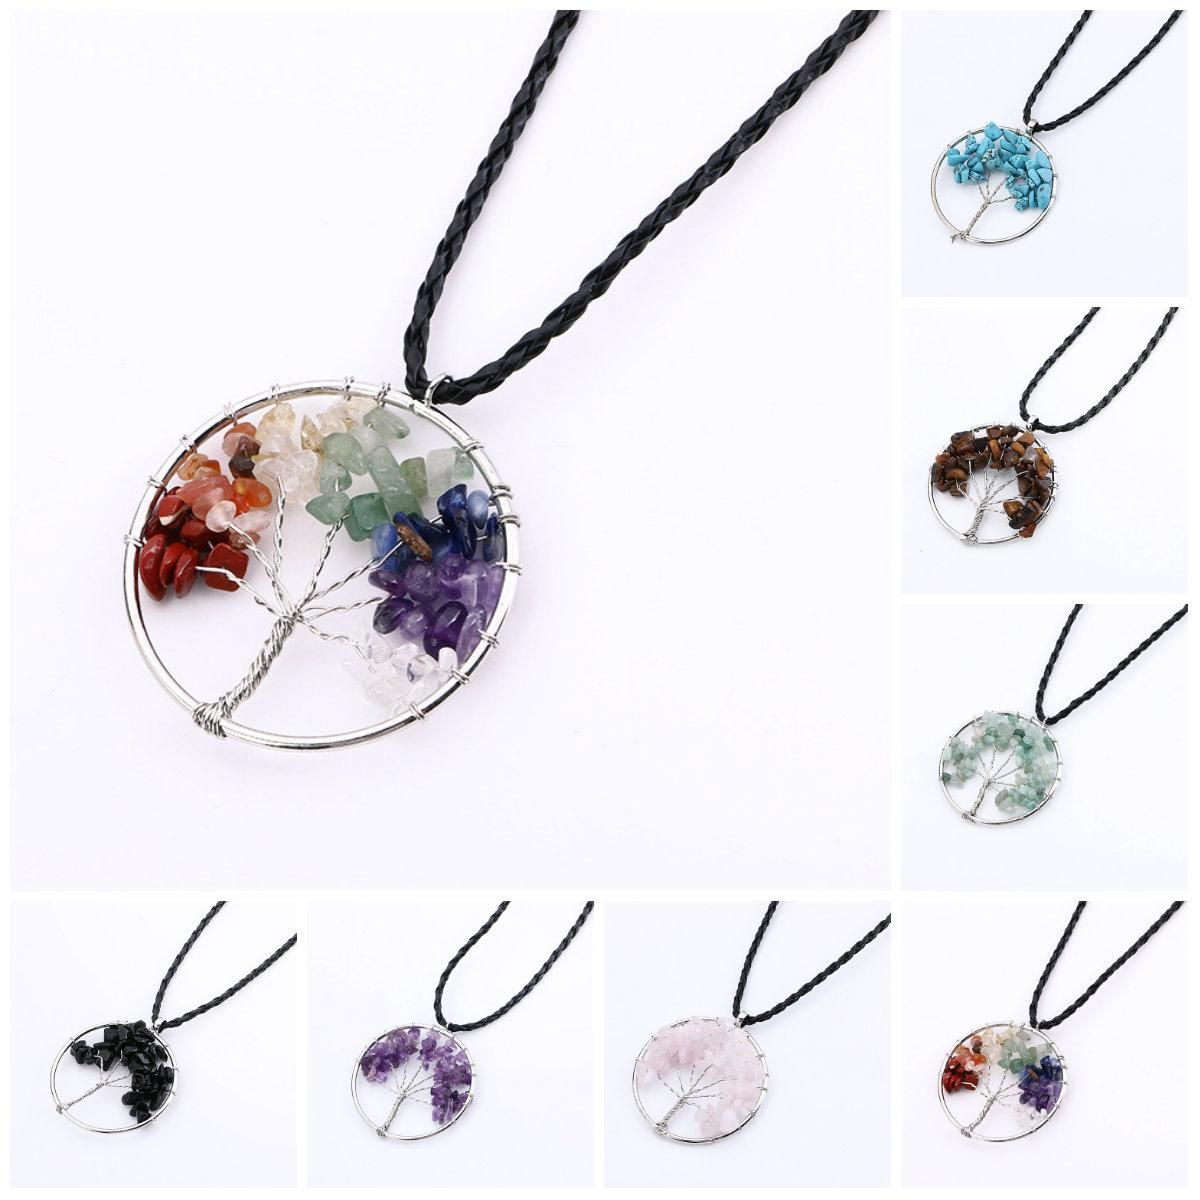 Statement Necklace For Women Rainbow 7 Chakra Amethyst Tree Of Life Quartz Pendant Necklace Multicolor Wisdom Tree Natural Stone Necklace